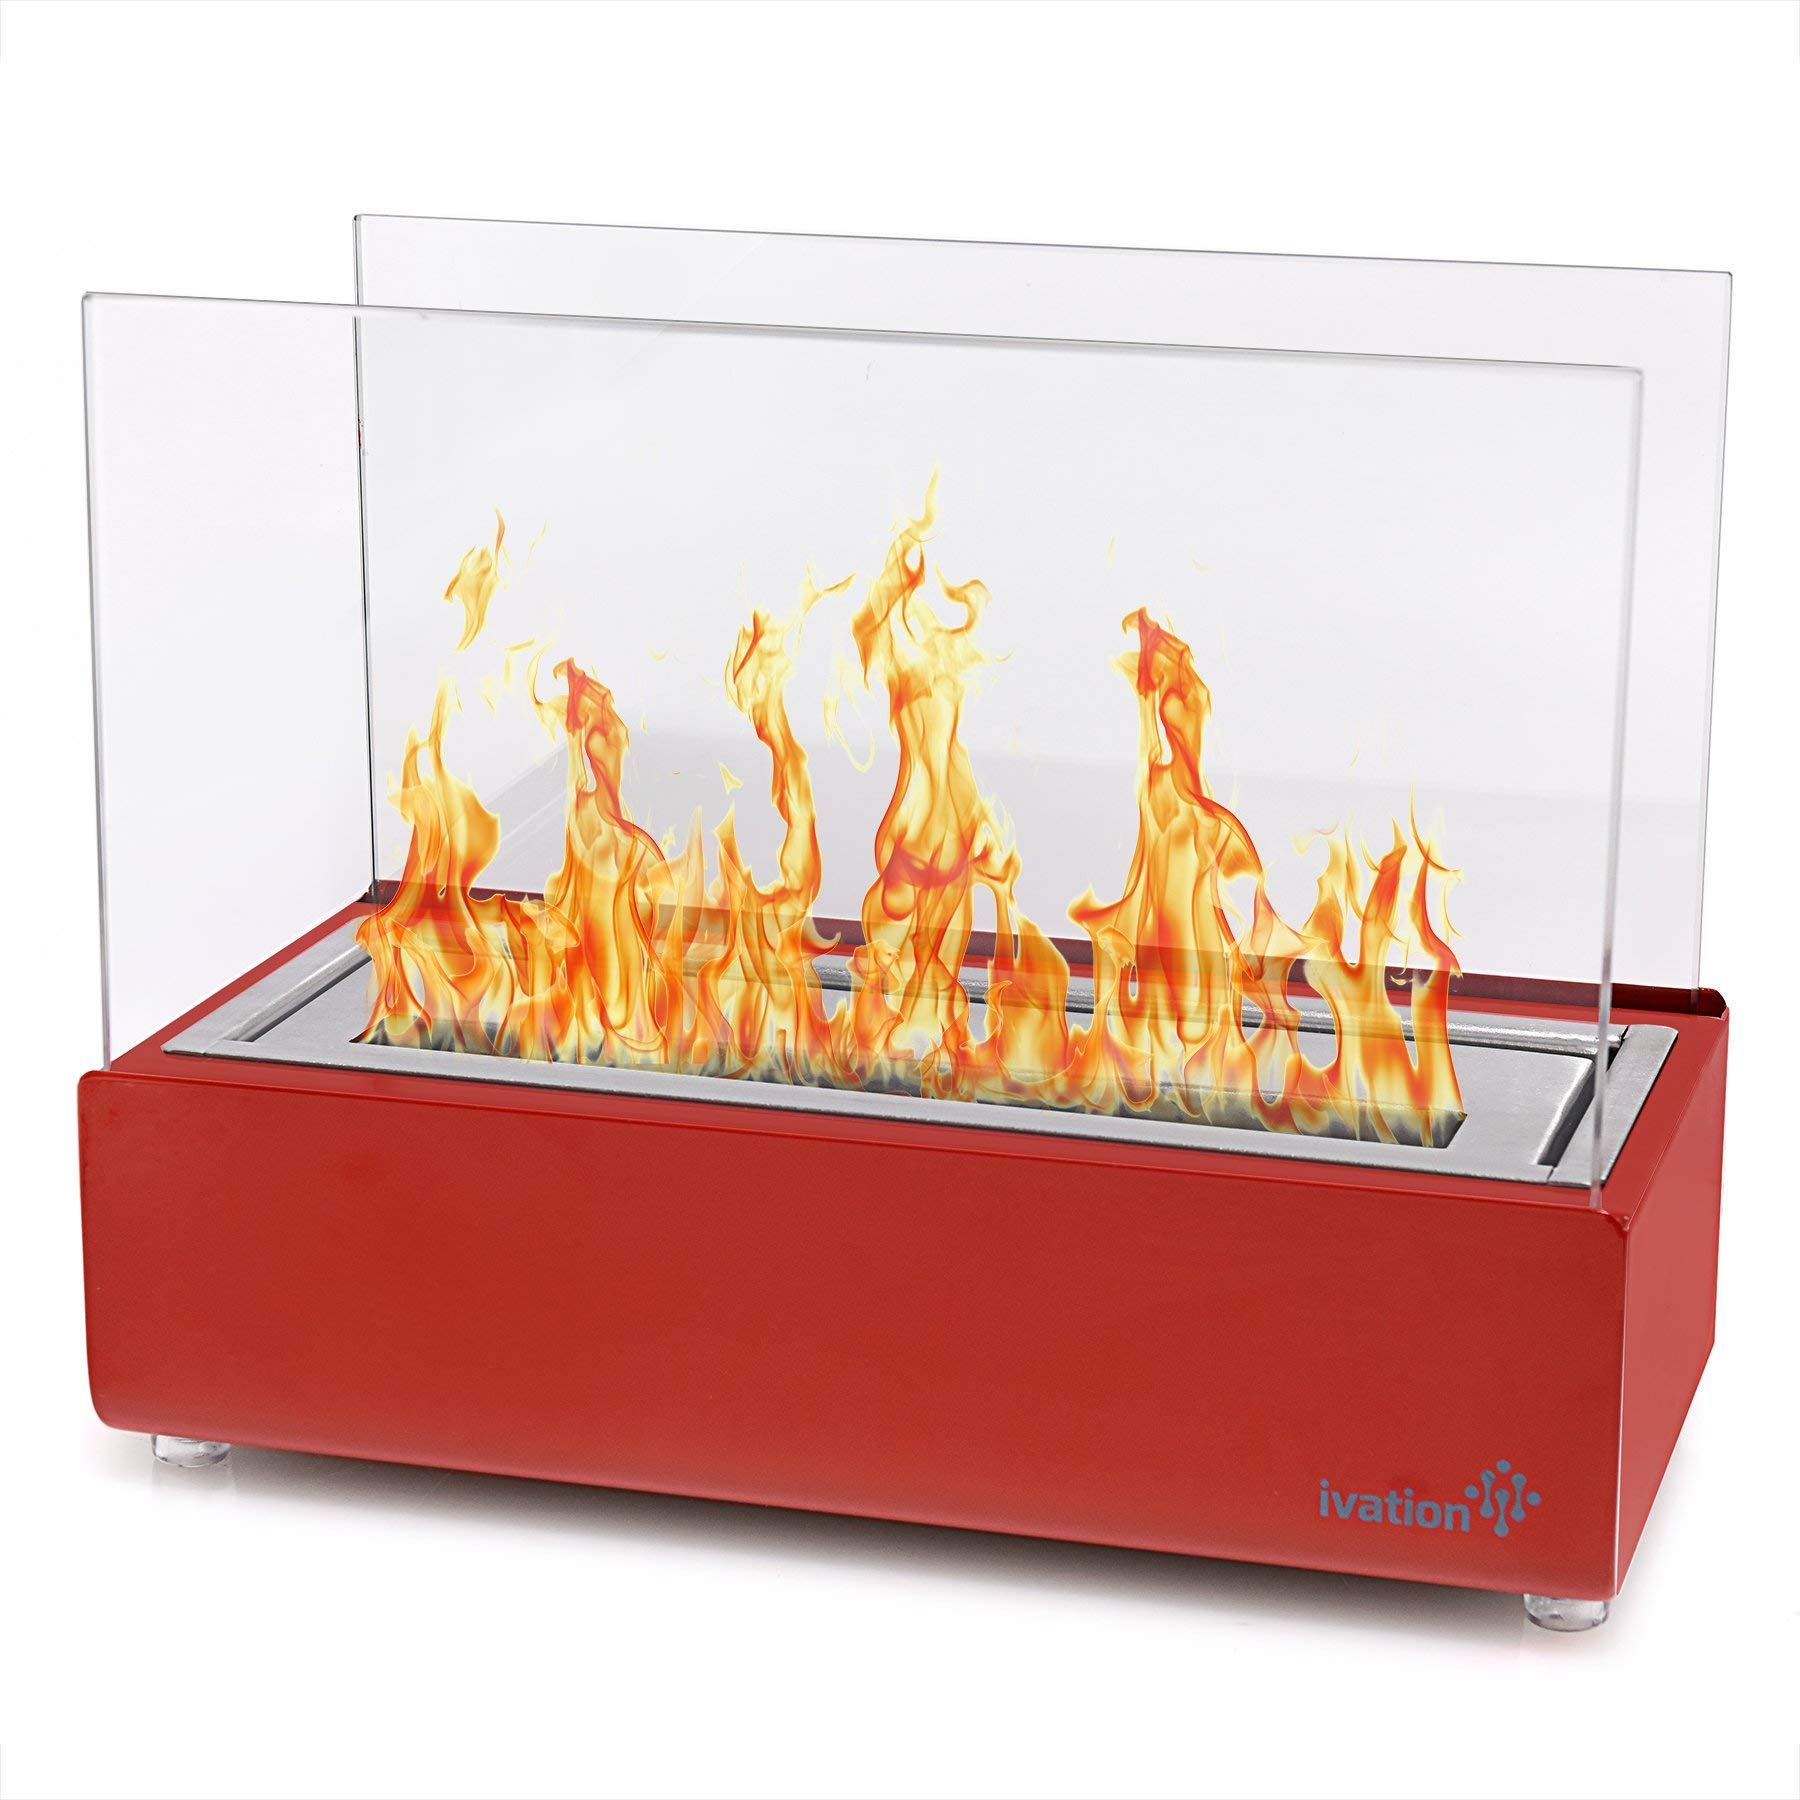 Ivation Vent-less Mini Tabletop Fireplace - Stainless Steel Portable Bio Ethanol Fireplace for Indoor & Outdoor Use - Includes Decorative Fireplace, Fuel Canister & Flame Snuffer (Red) (Certified Re by Ivation